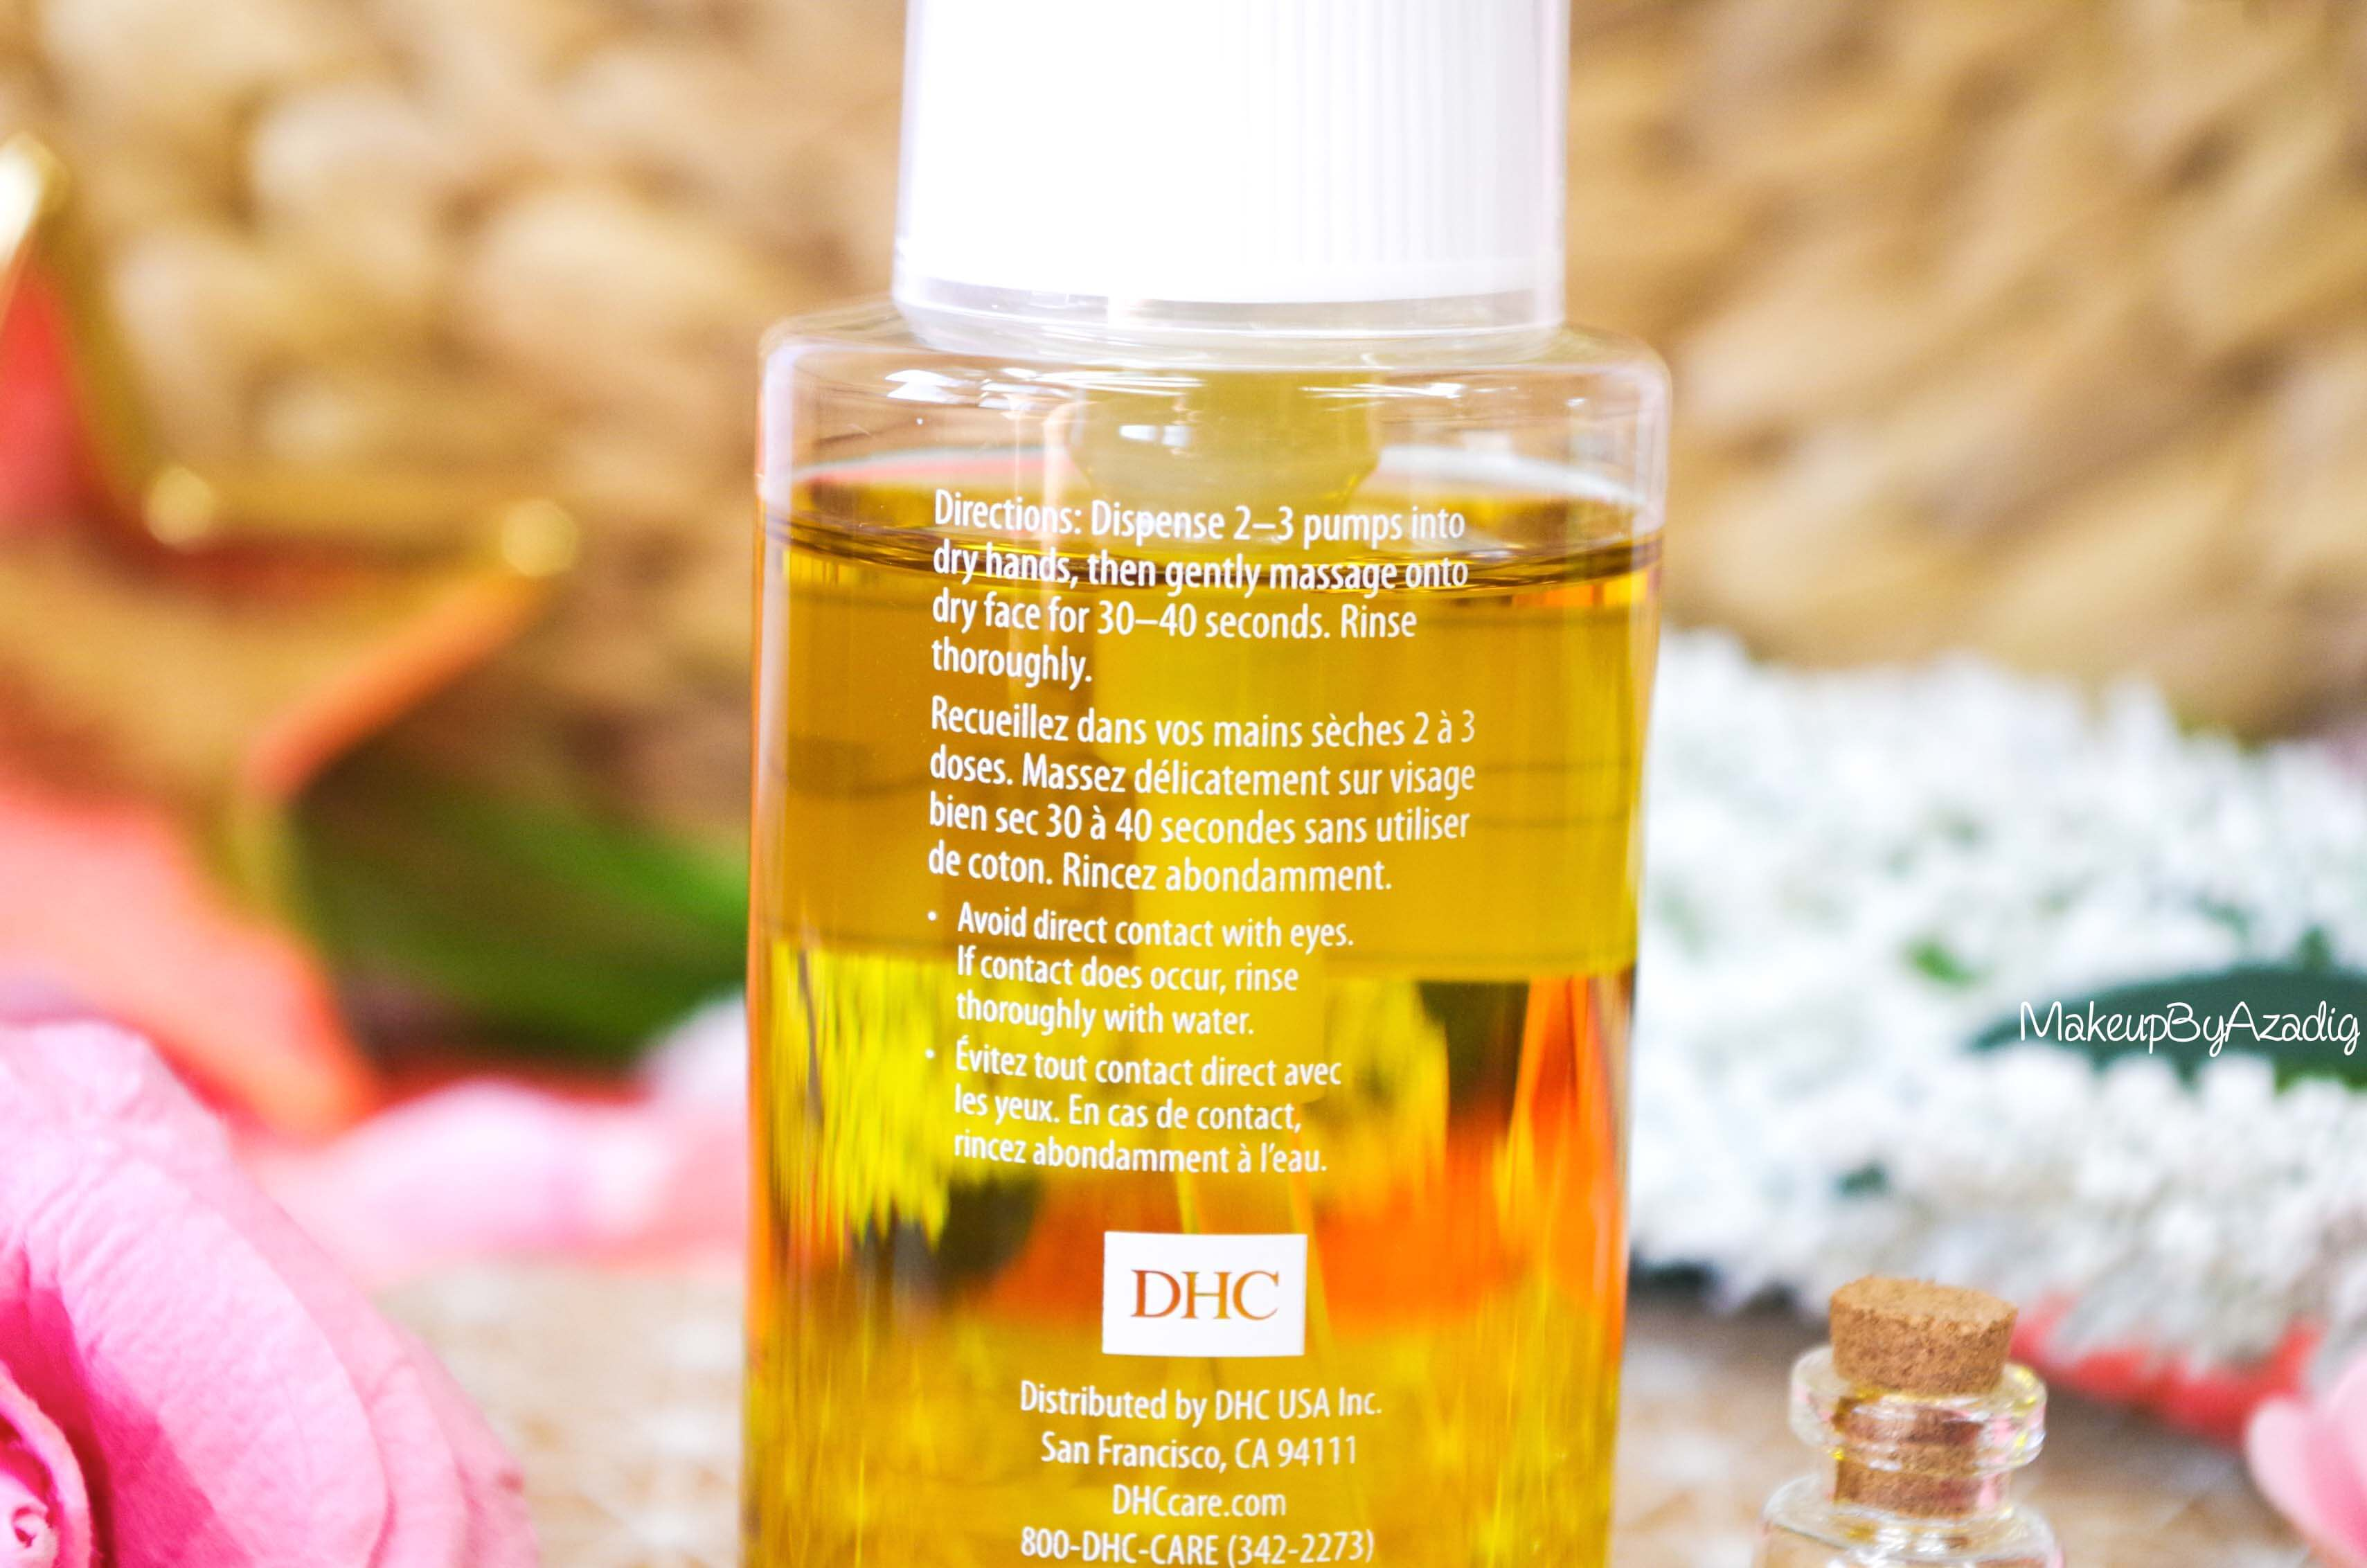 revue-review-huile-demaquillante-deep-cleansing-oil-dhc-meilleure-avis-prix-nocibe-monoprix-makeupbyazadig-application